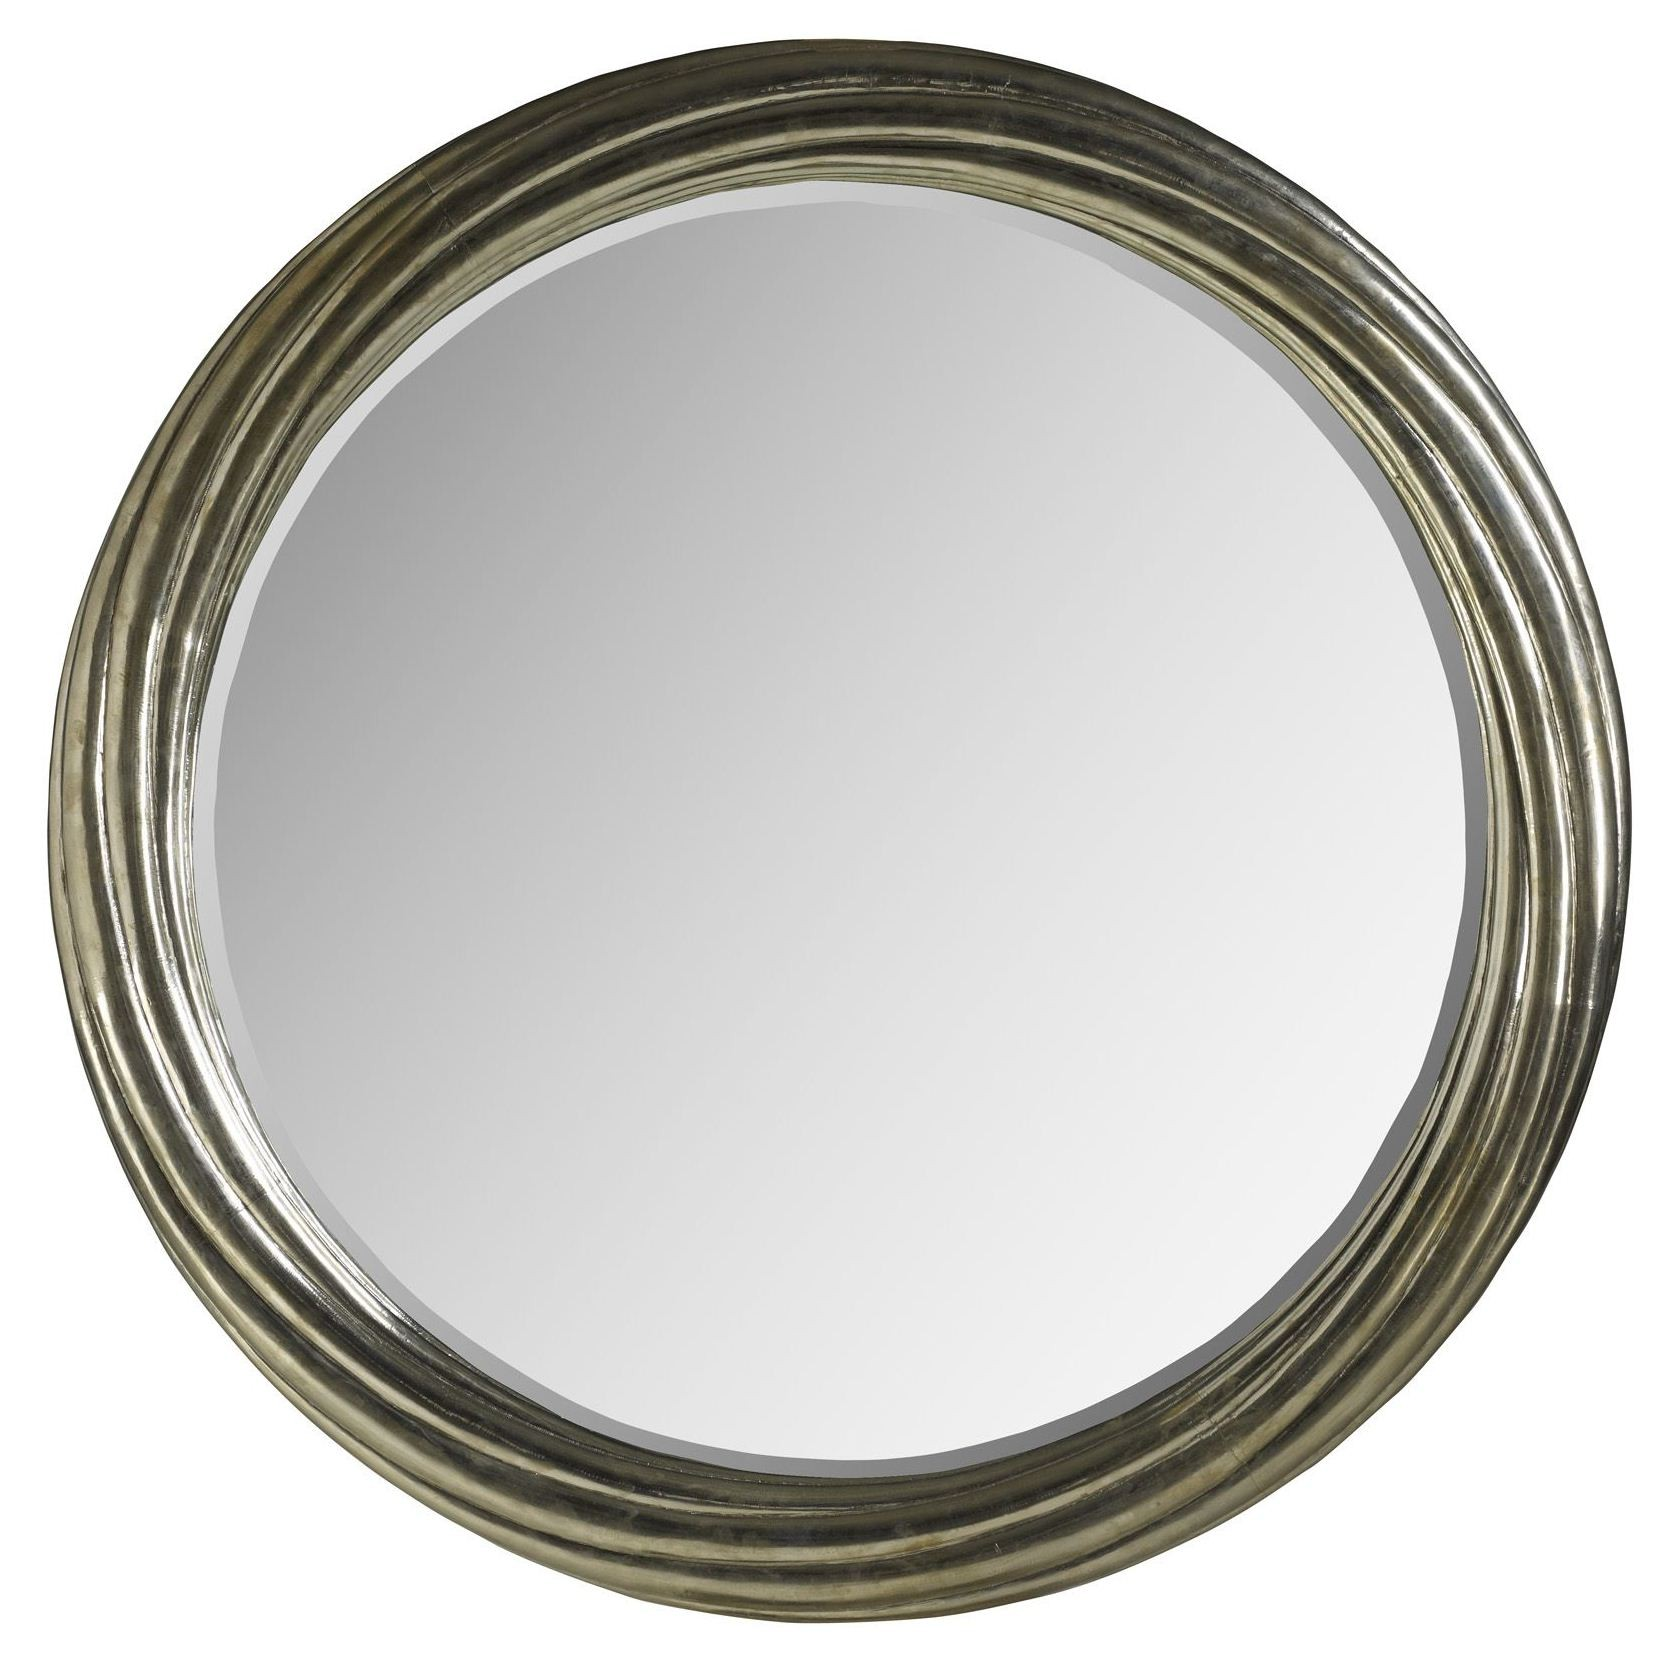 Treviso Large Round Mirror From Brownstone Tr019